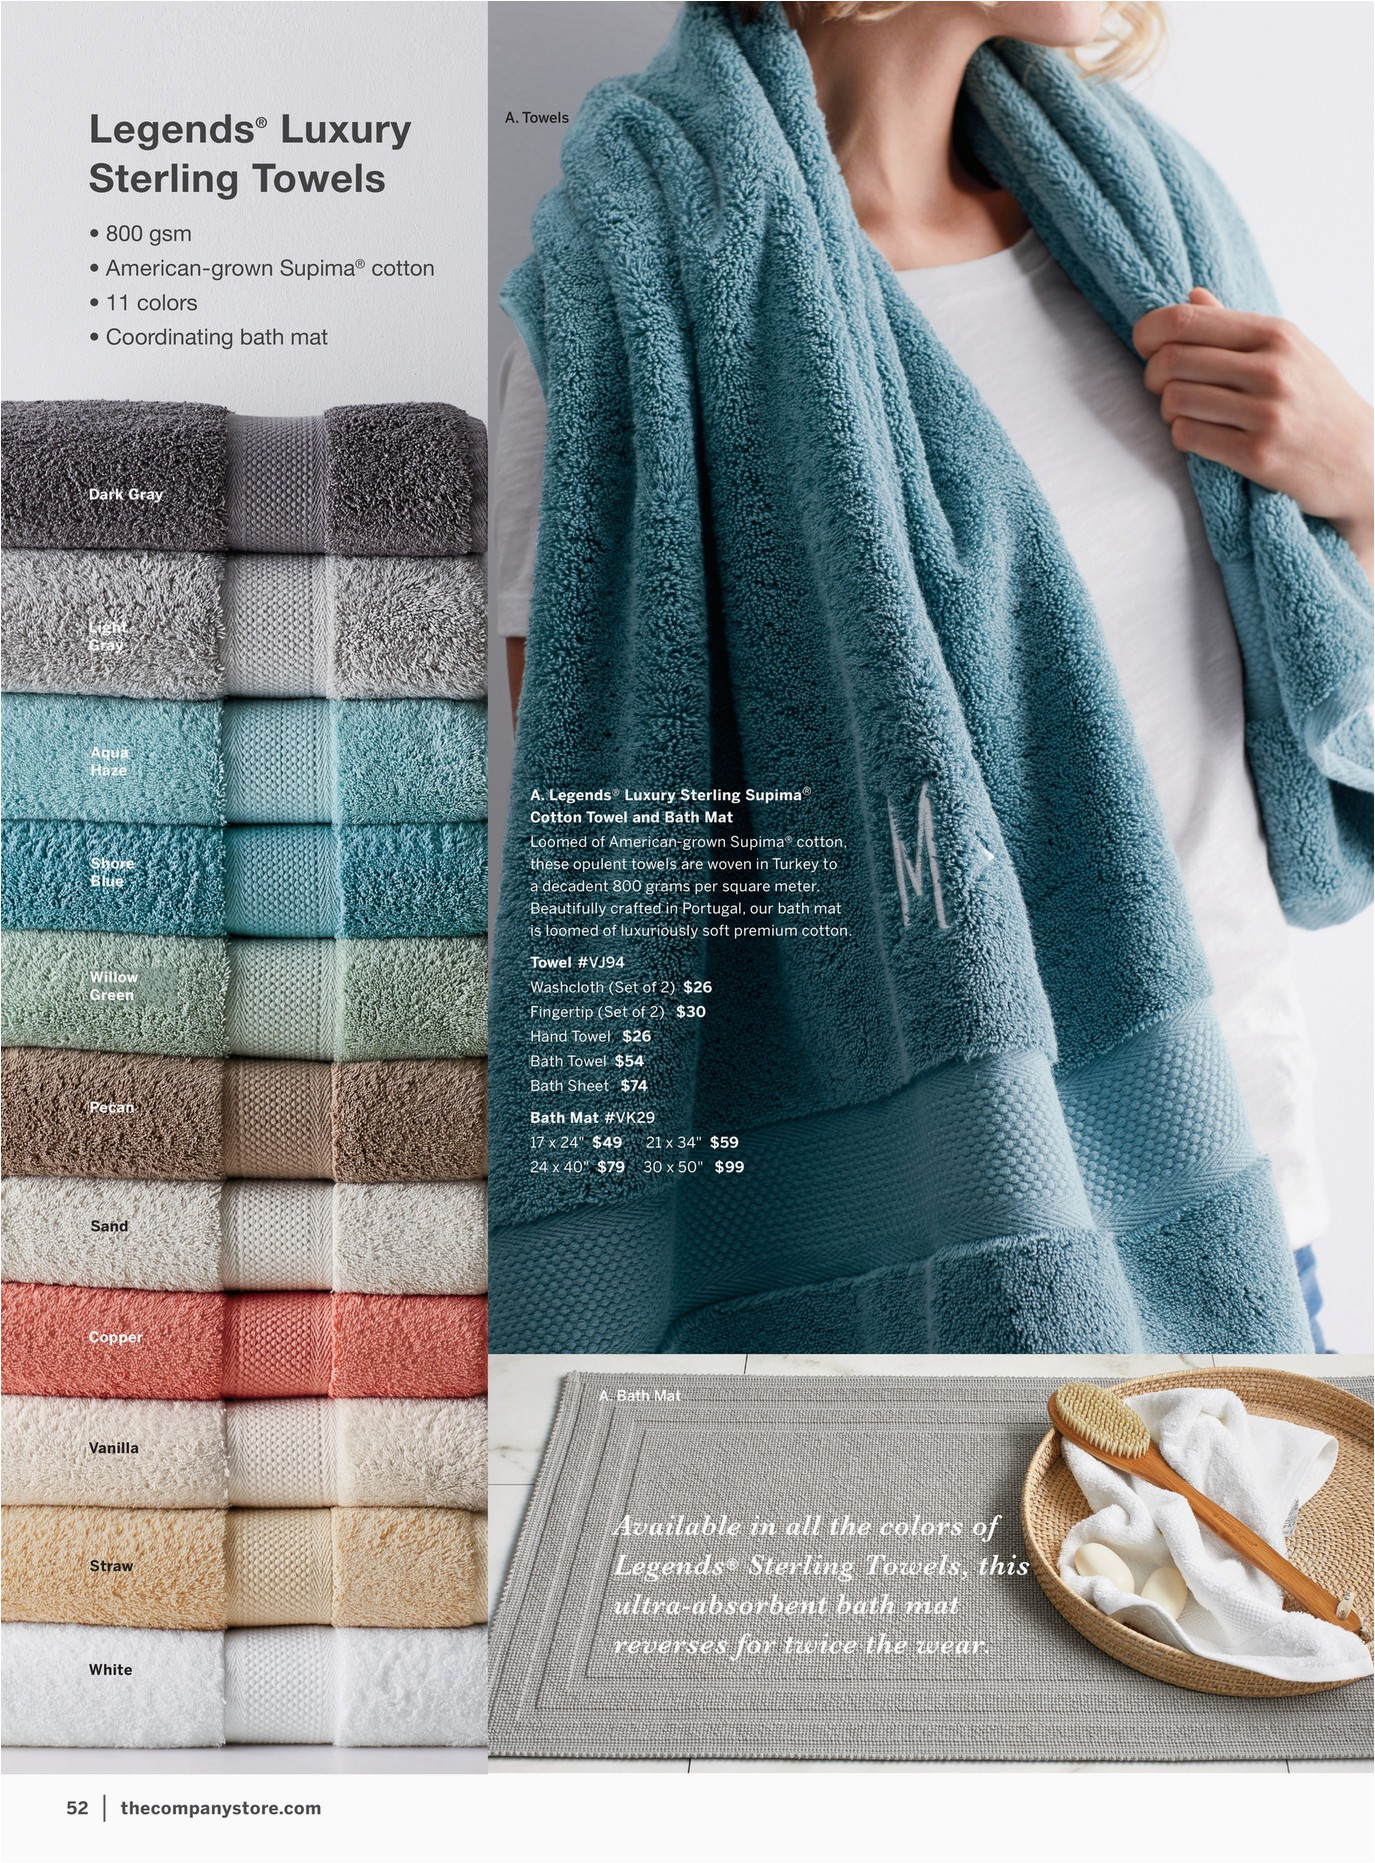 Turquoise Bath towels and Rugs the Pany Store December 2019 Legends Luxury Regal